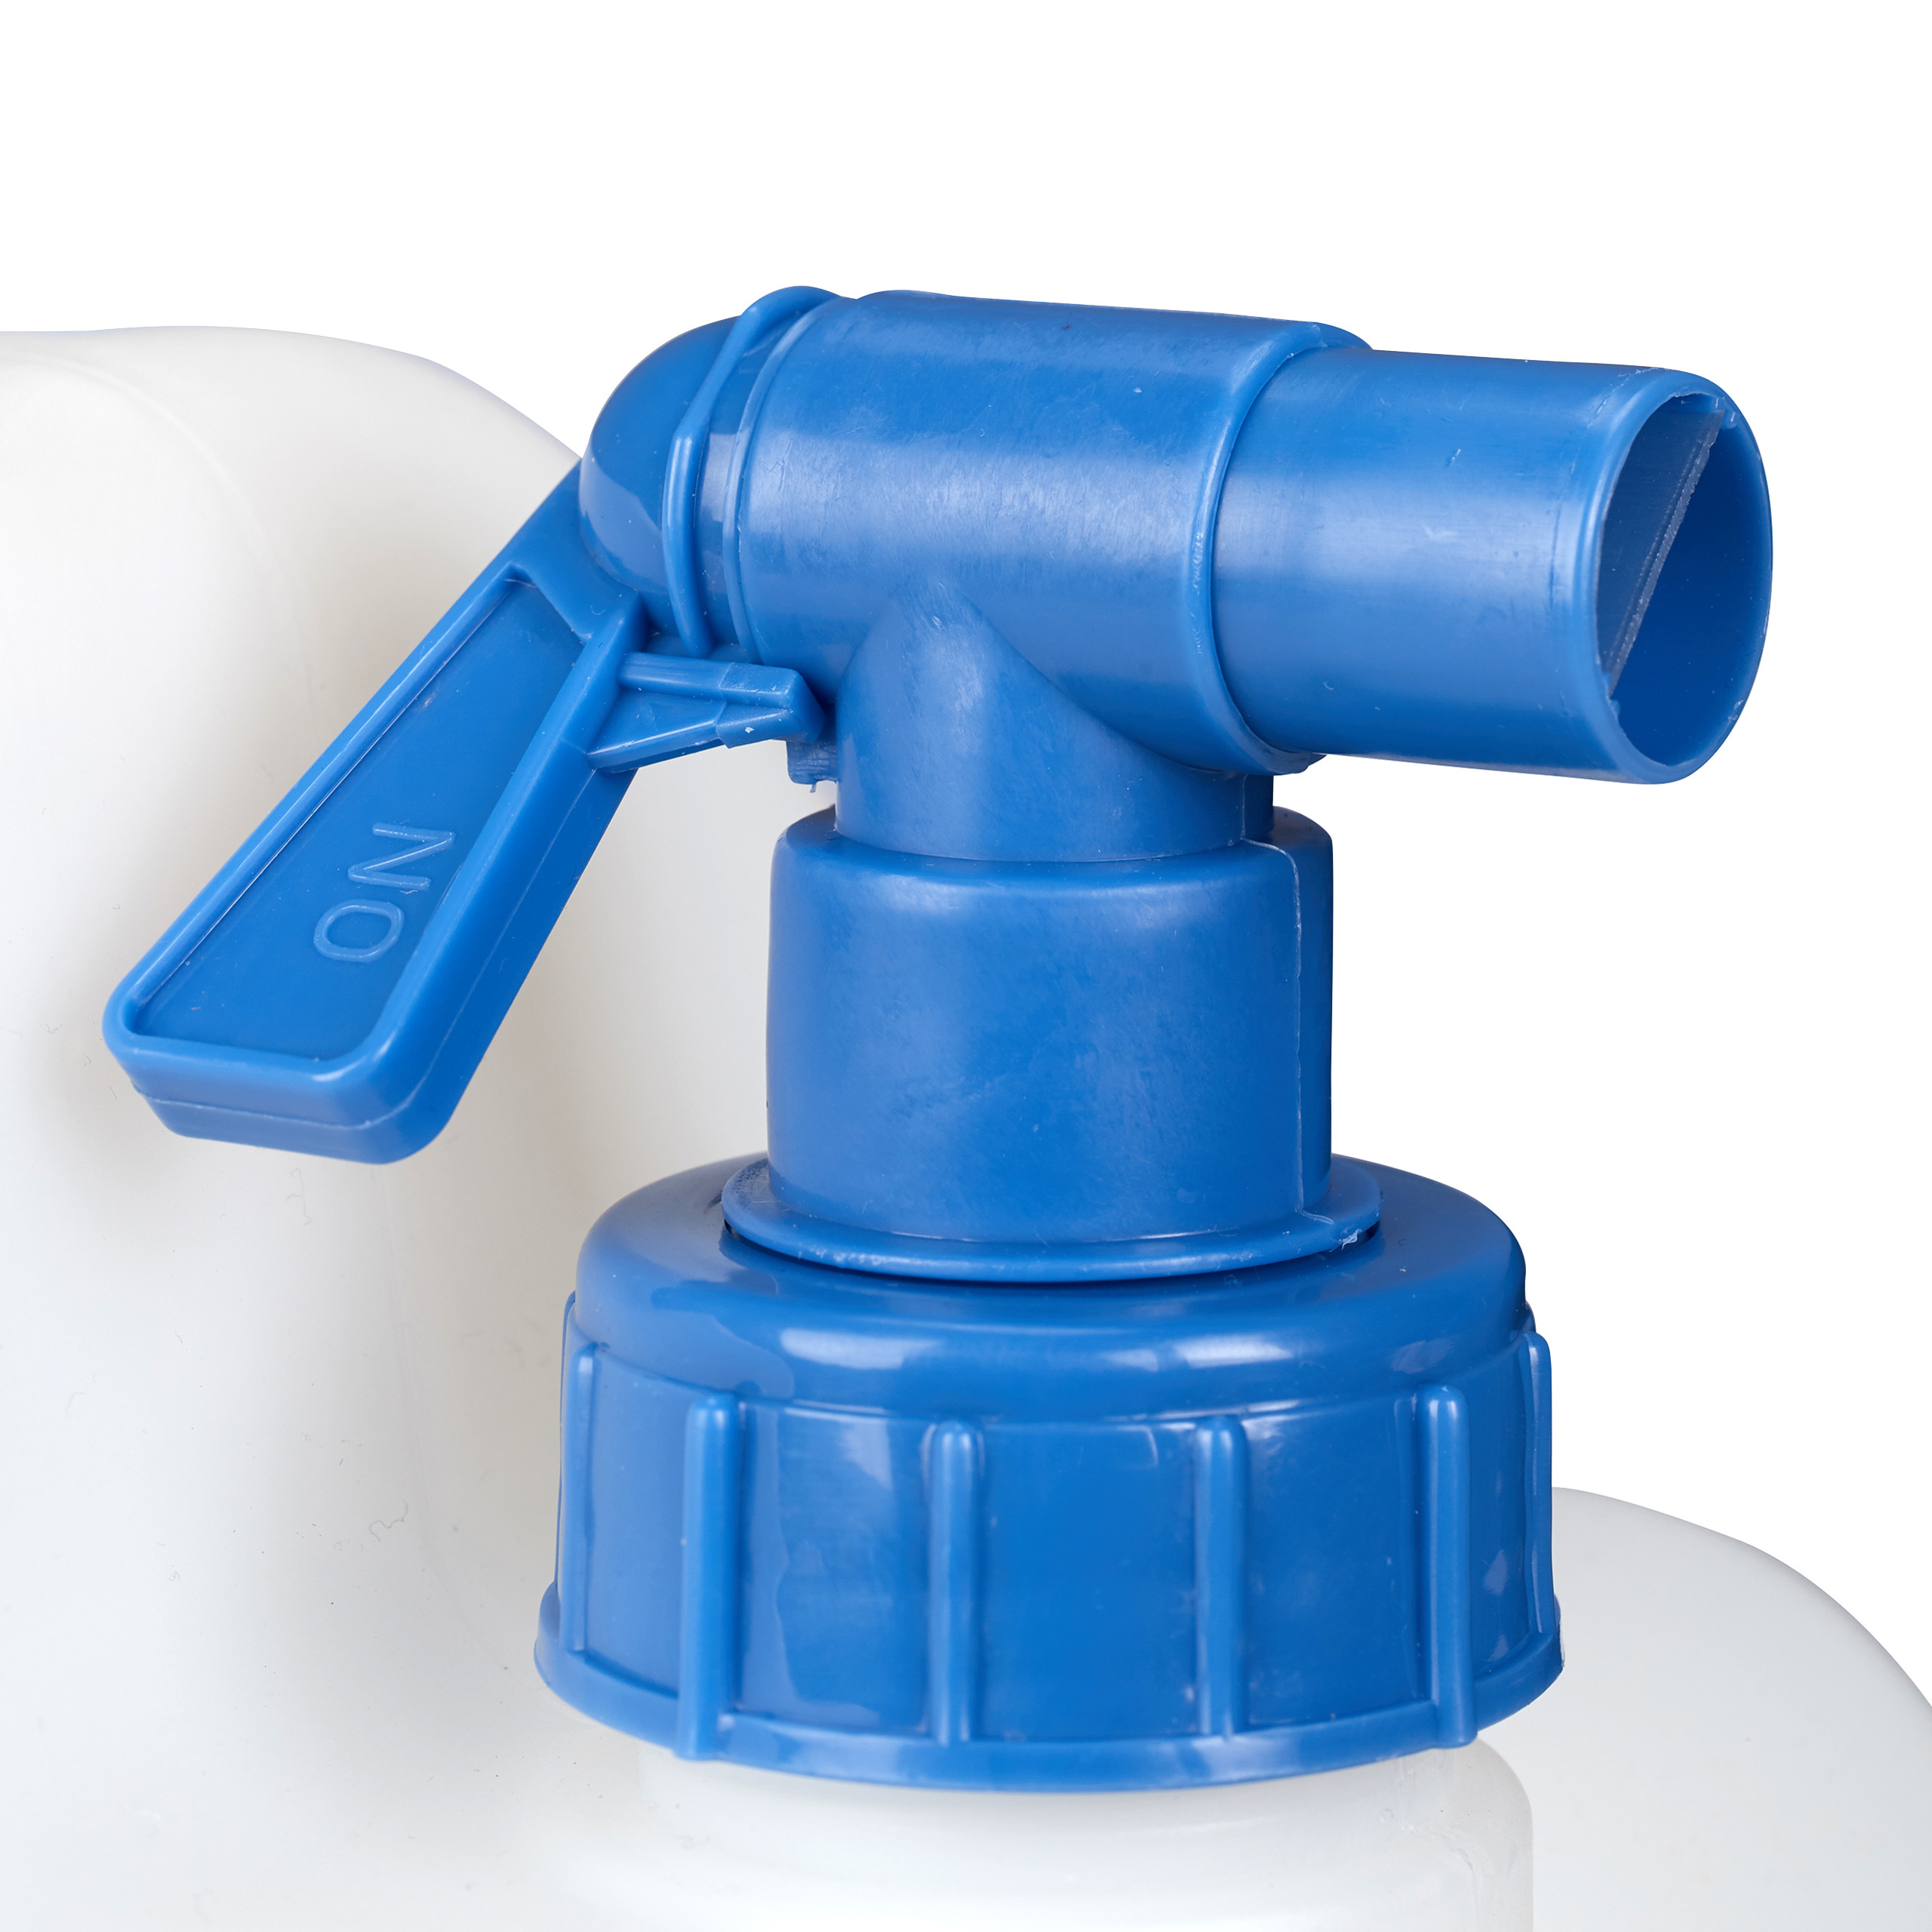 thumbnail 12 - Water Canister, Spigot, Jerrycan, Water Jug, Plastic Container